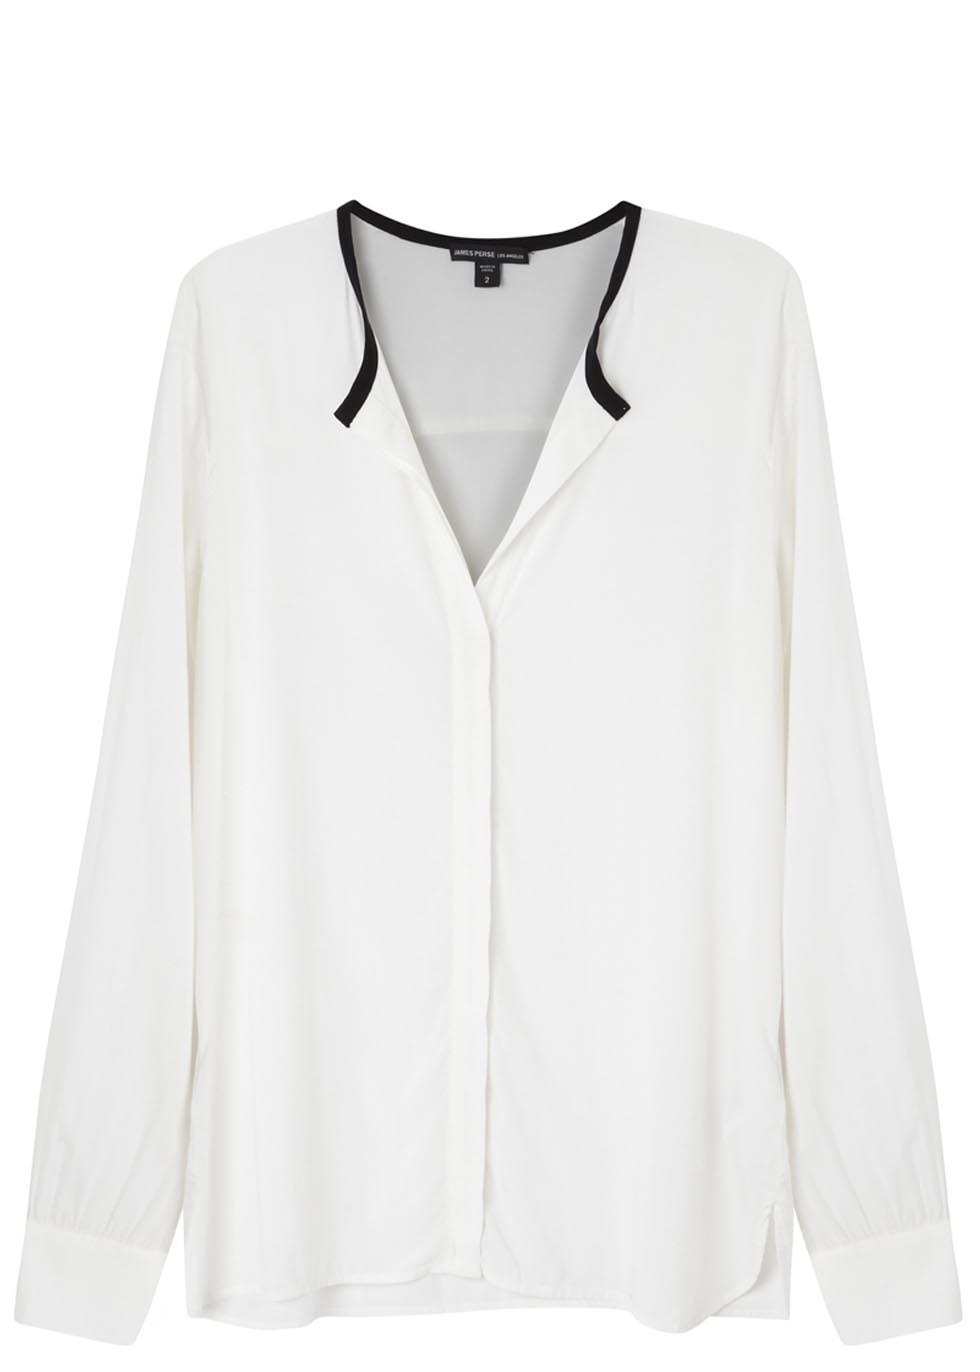 Monochrome Oversized Blouse Size - neckline: v-neck; length: below the bottom; style: blouse; predominant colour: ivory/cream; secondary colour: black; occasions: casual, work, creative work; fibres: viscose/rayon - stretch; fit: loose; sleeve length: long sleeve; sleeve style: standard; pattern type: fabric; pattern size: standard; pattern: colourblock; texture group: other - light to midweight; season: s/s 2014; trends: monochrome